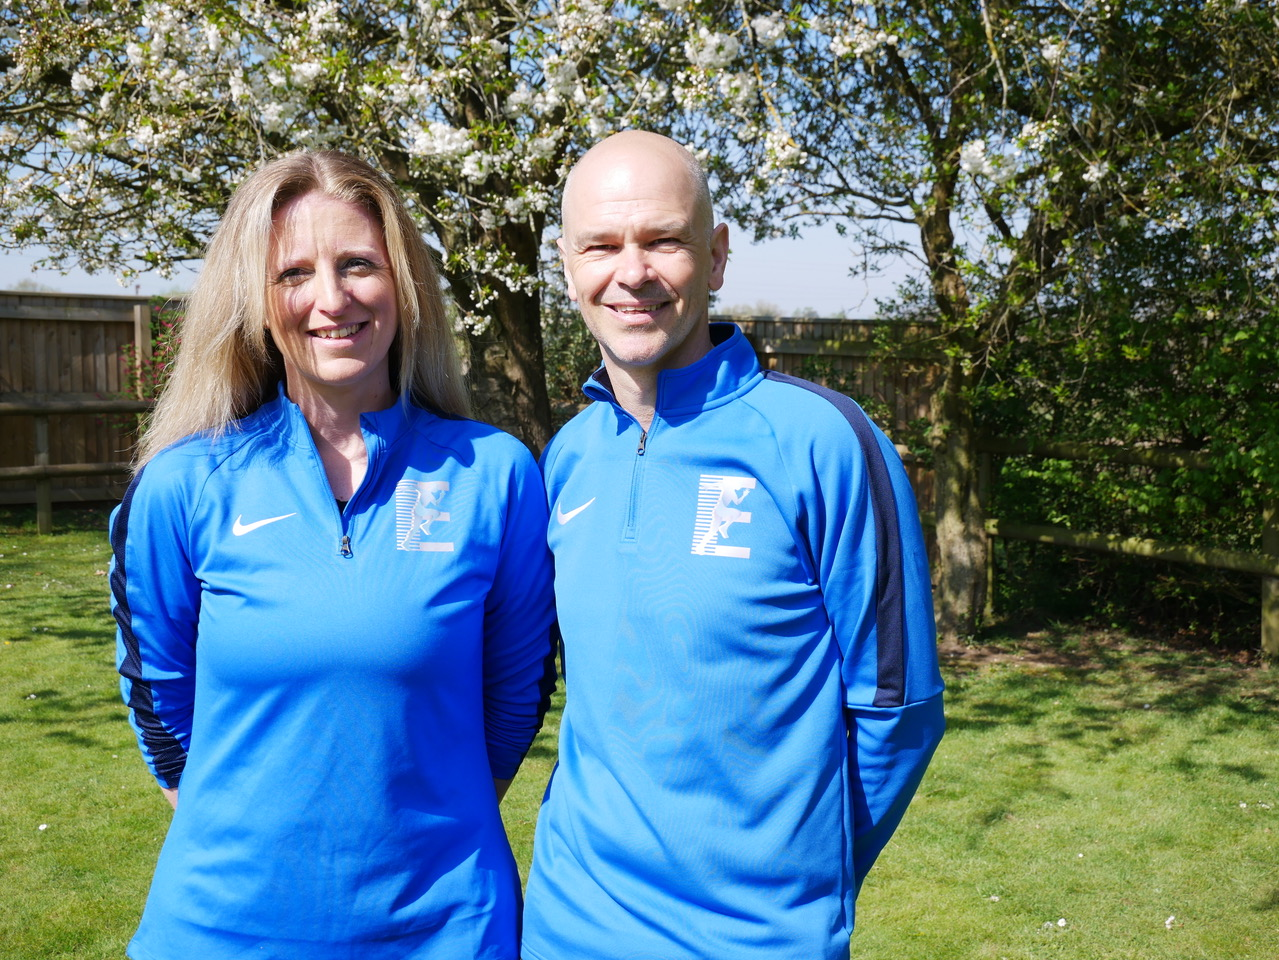 MATRIX PARTNER WITH NHS DIRECTOR TO MAKE BOUTIQUE PERSONAL TRAINING COMPANY A REALITY